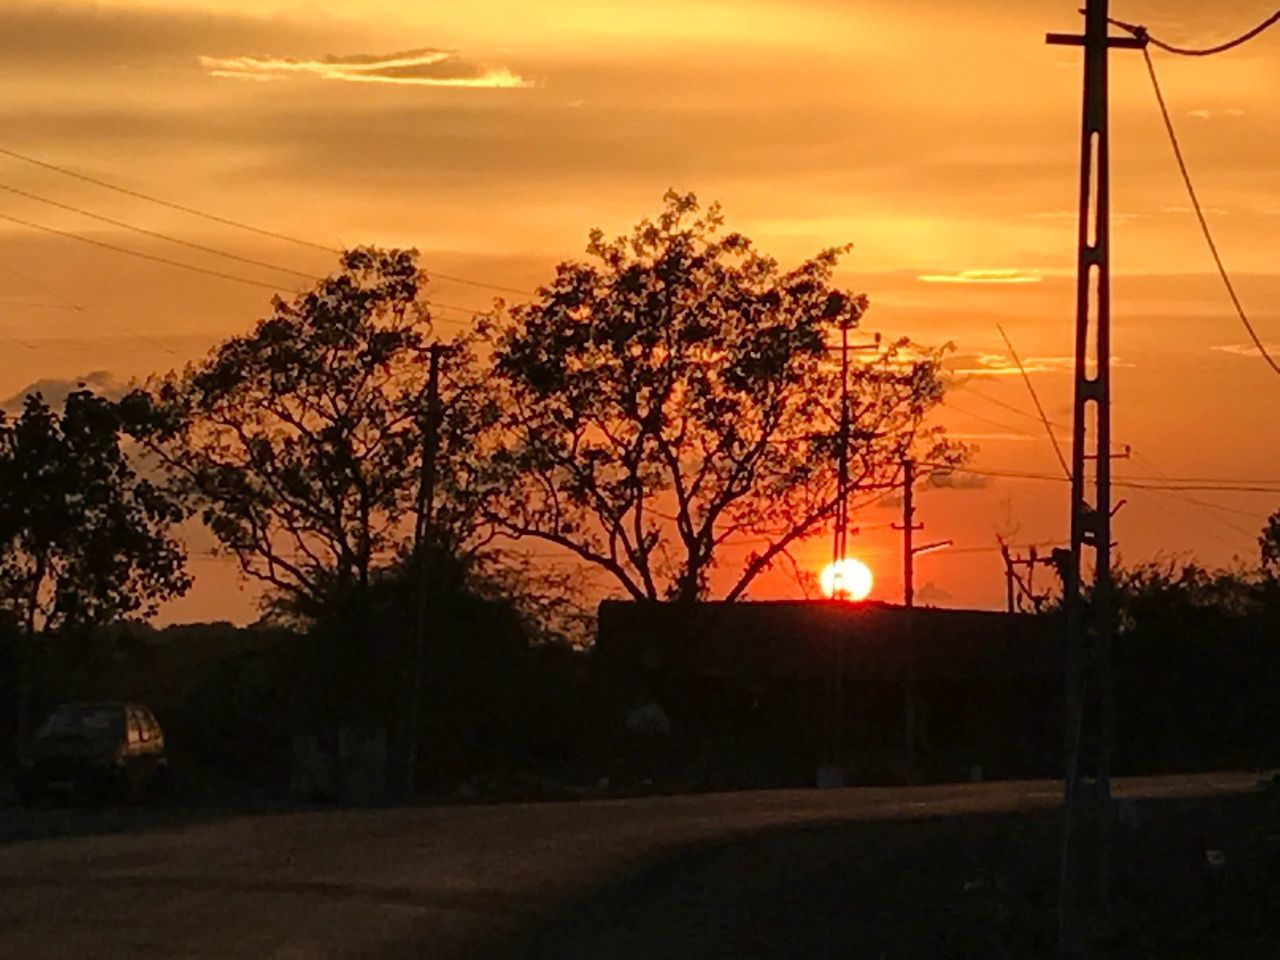 Sunset Cable Orange Color Power Line  Tree 😚 Sky 😚 Power Supply Electricity  Outdoors Scenics Road Side Without Edit ^^ The Photojournalist - 2017 EyeEm Awards EyeEmNewHere EyeEm Selects